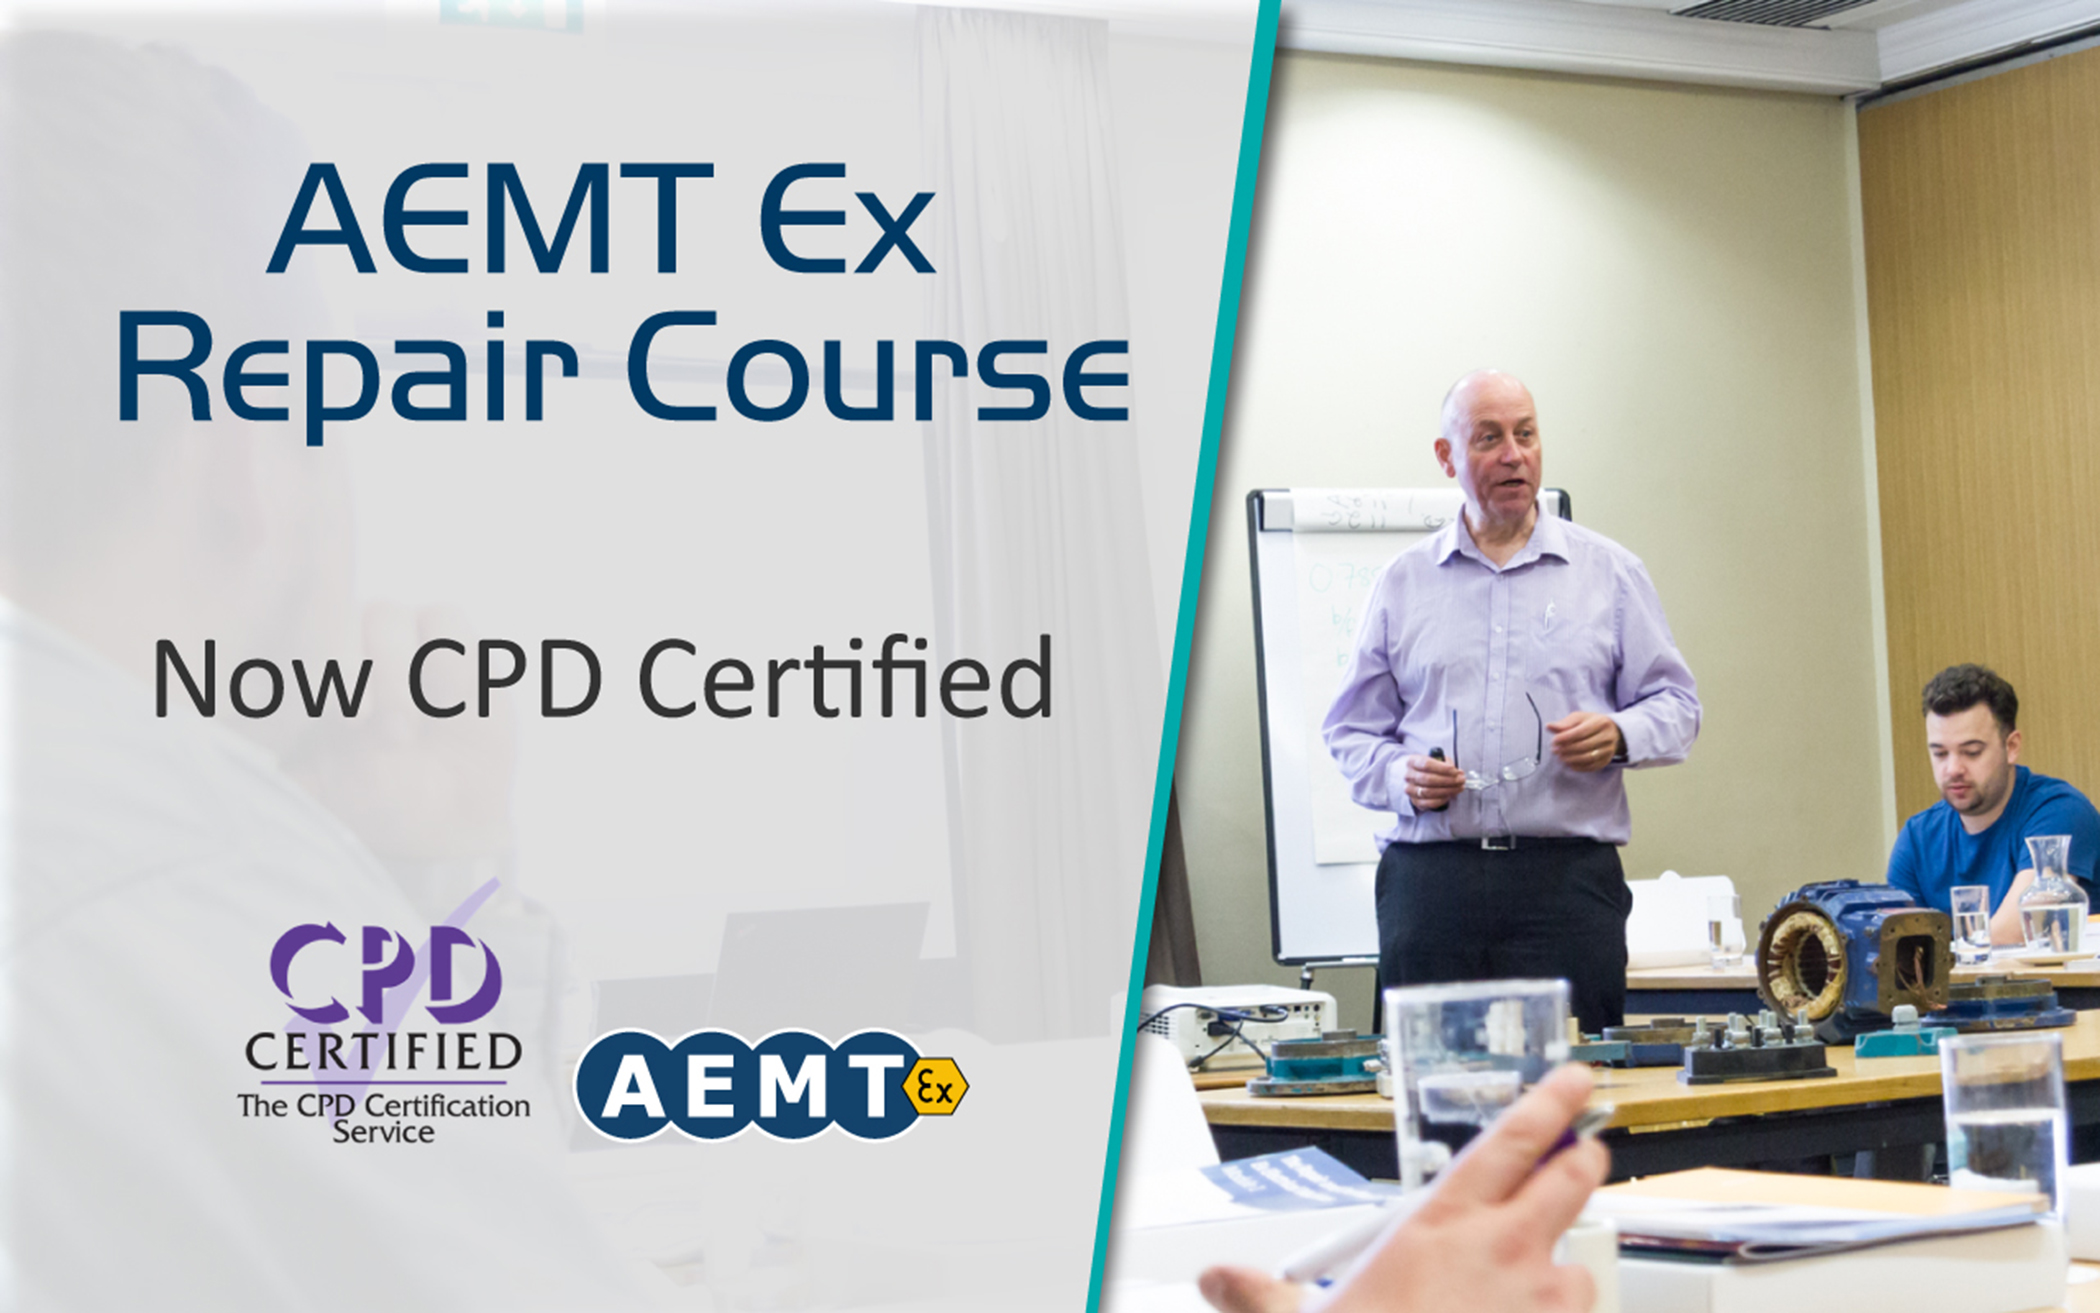 AEMT Hazardous Area Equipment Repair Course now recognised by Continual Professional Development (CPD) Scheme.